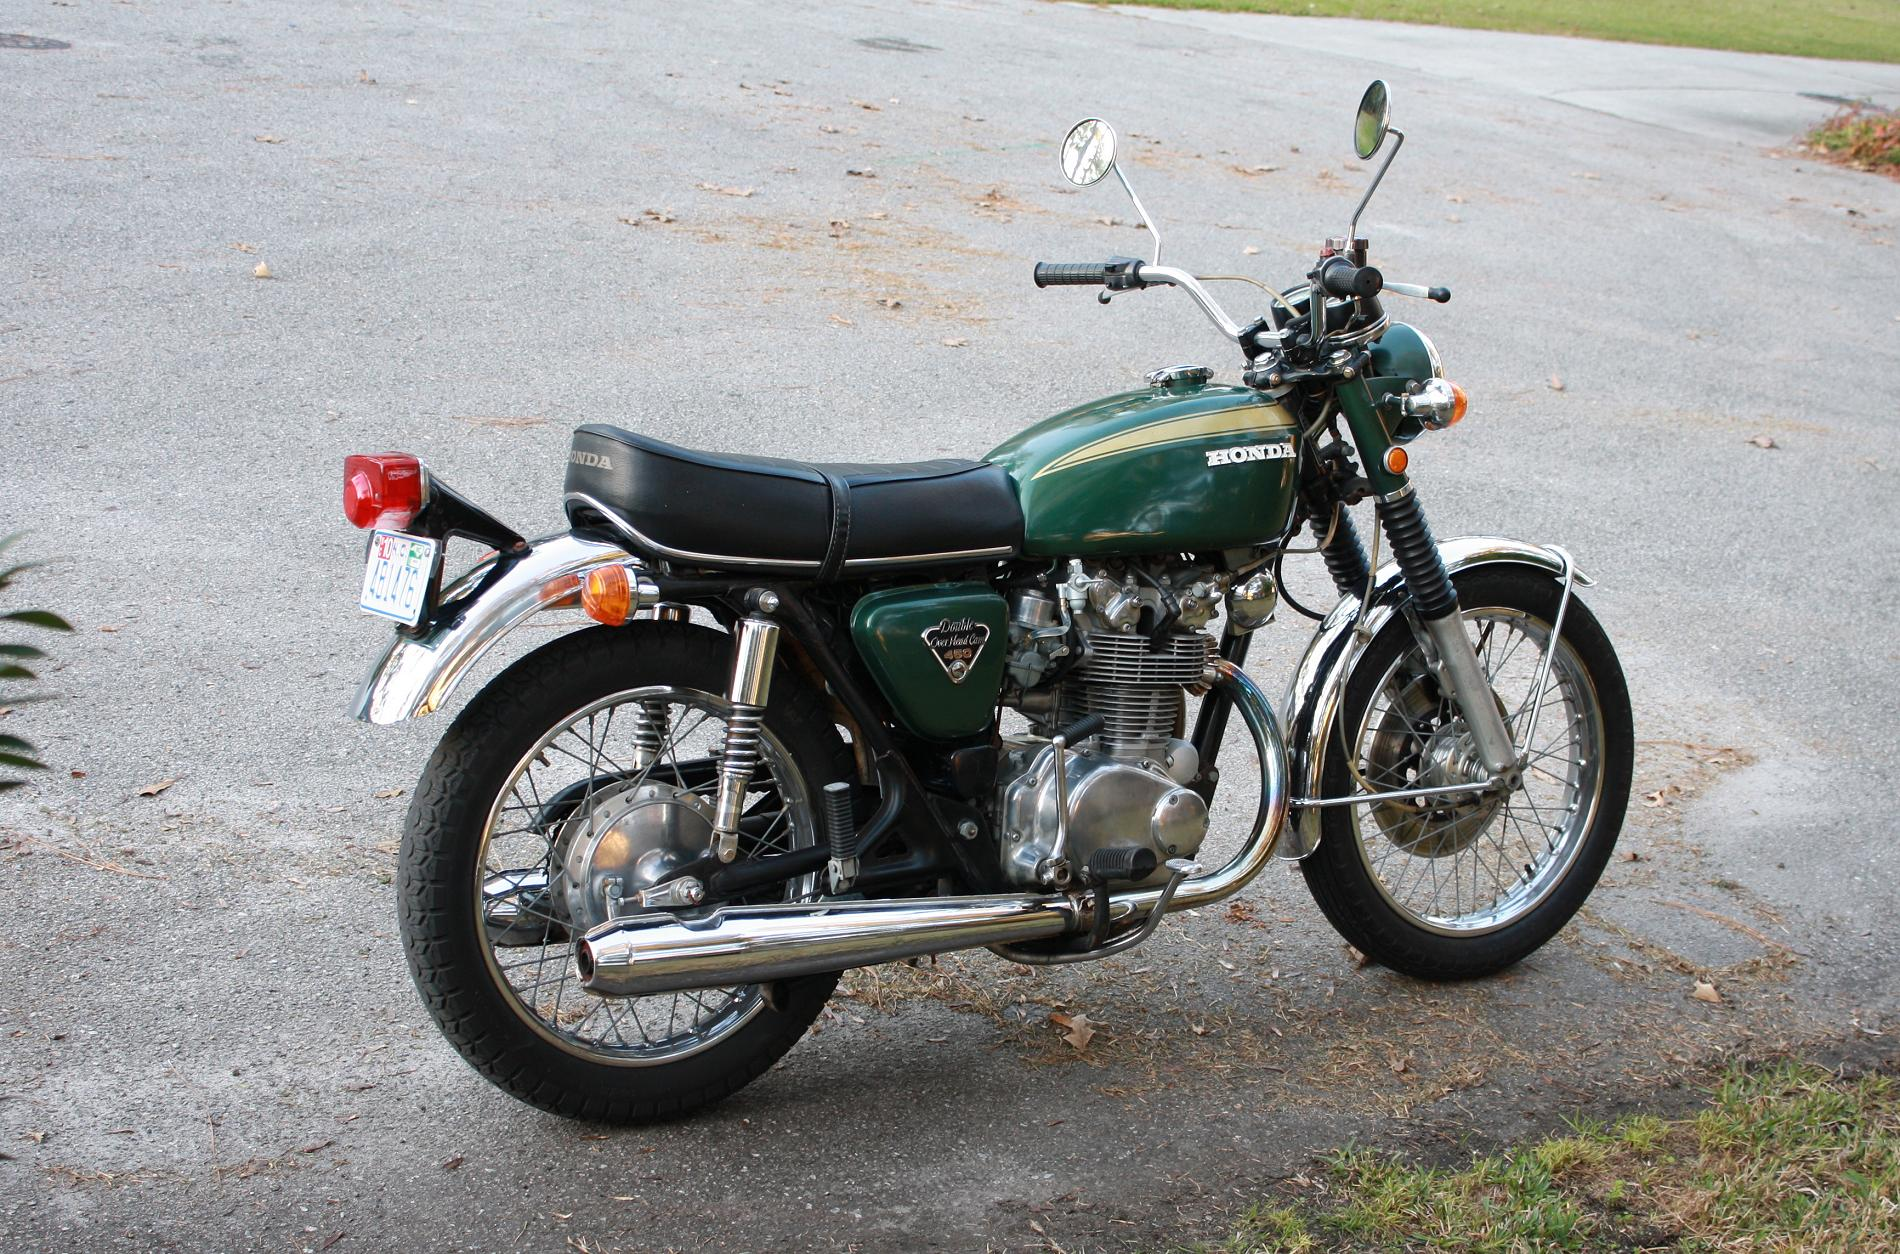 Blog Entry 1386 additionally Cb400ss as well Honda Cb400 Four further AOS04215 further Watch. on honda cb400